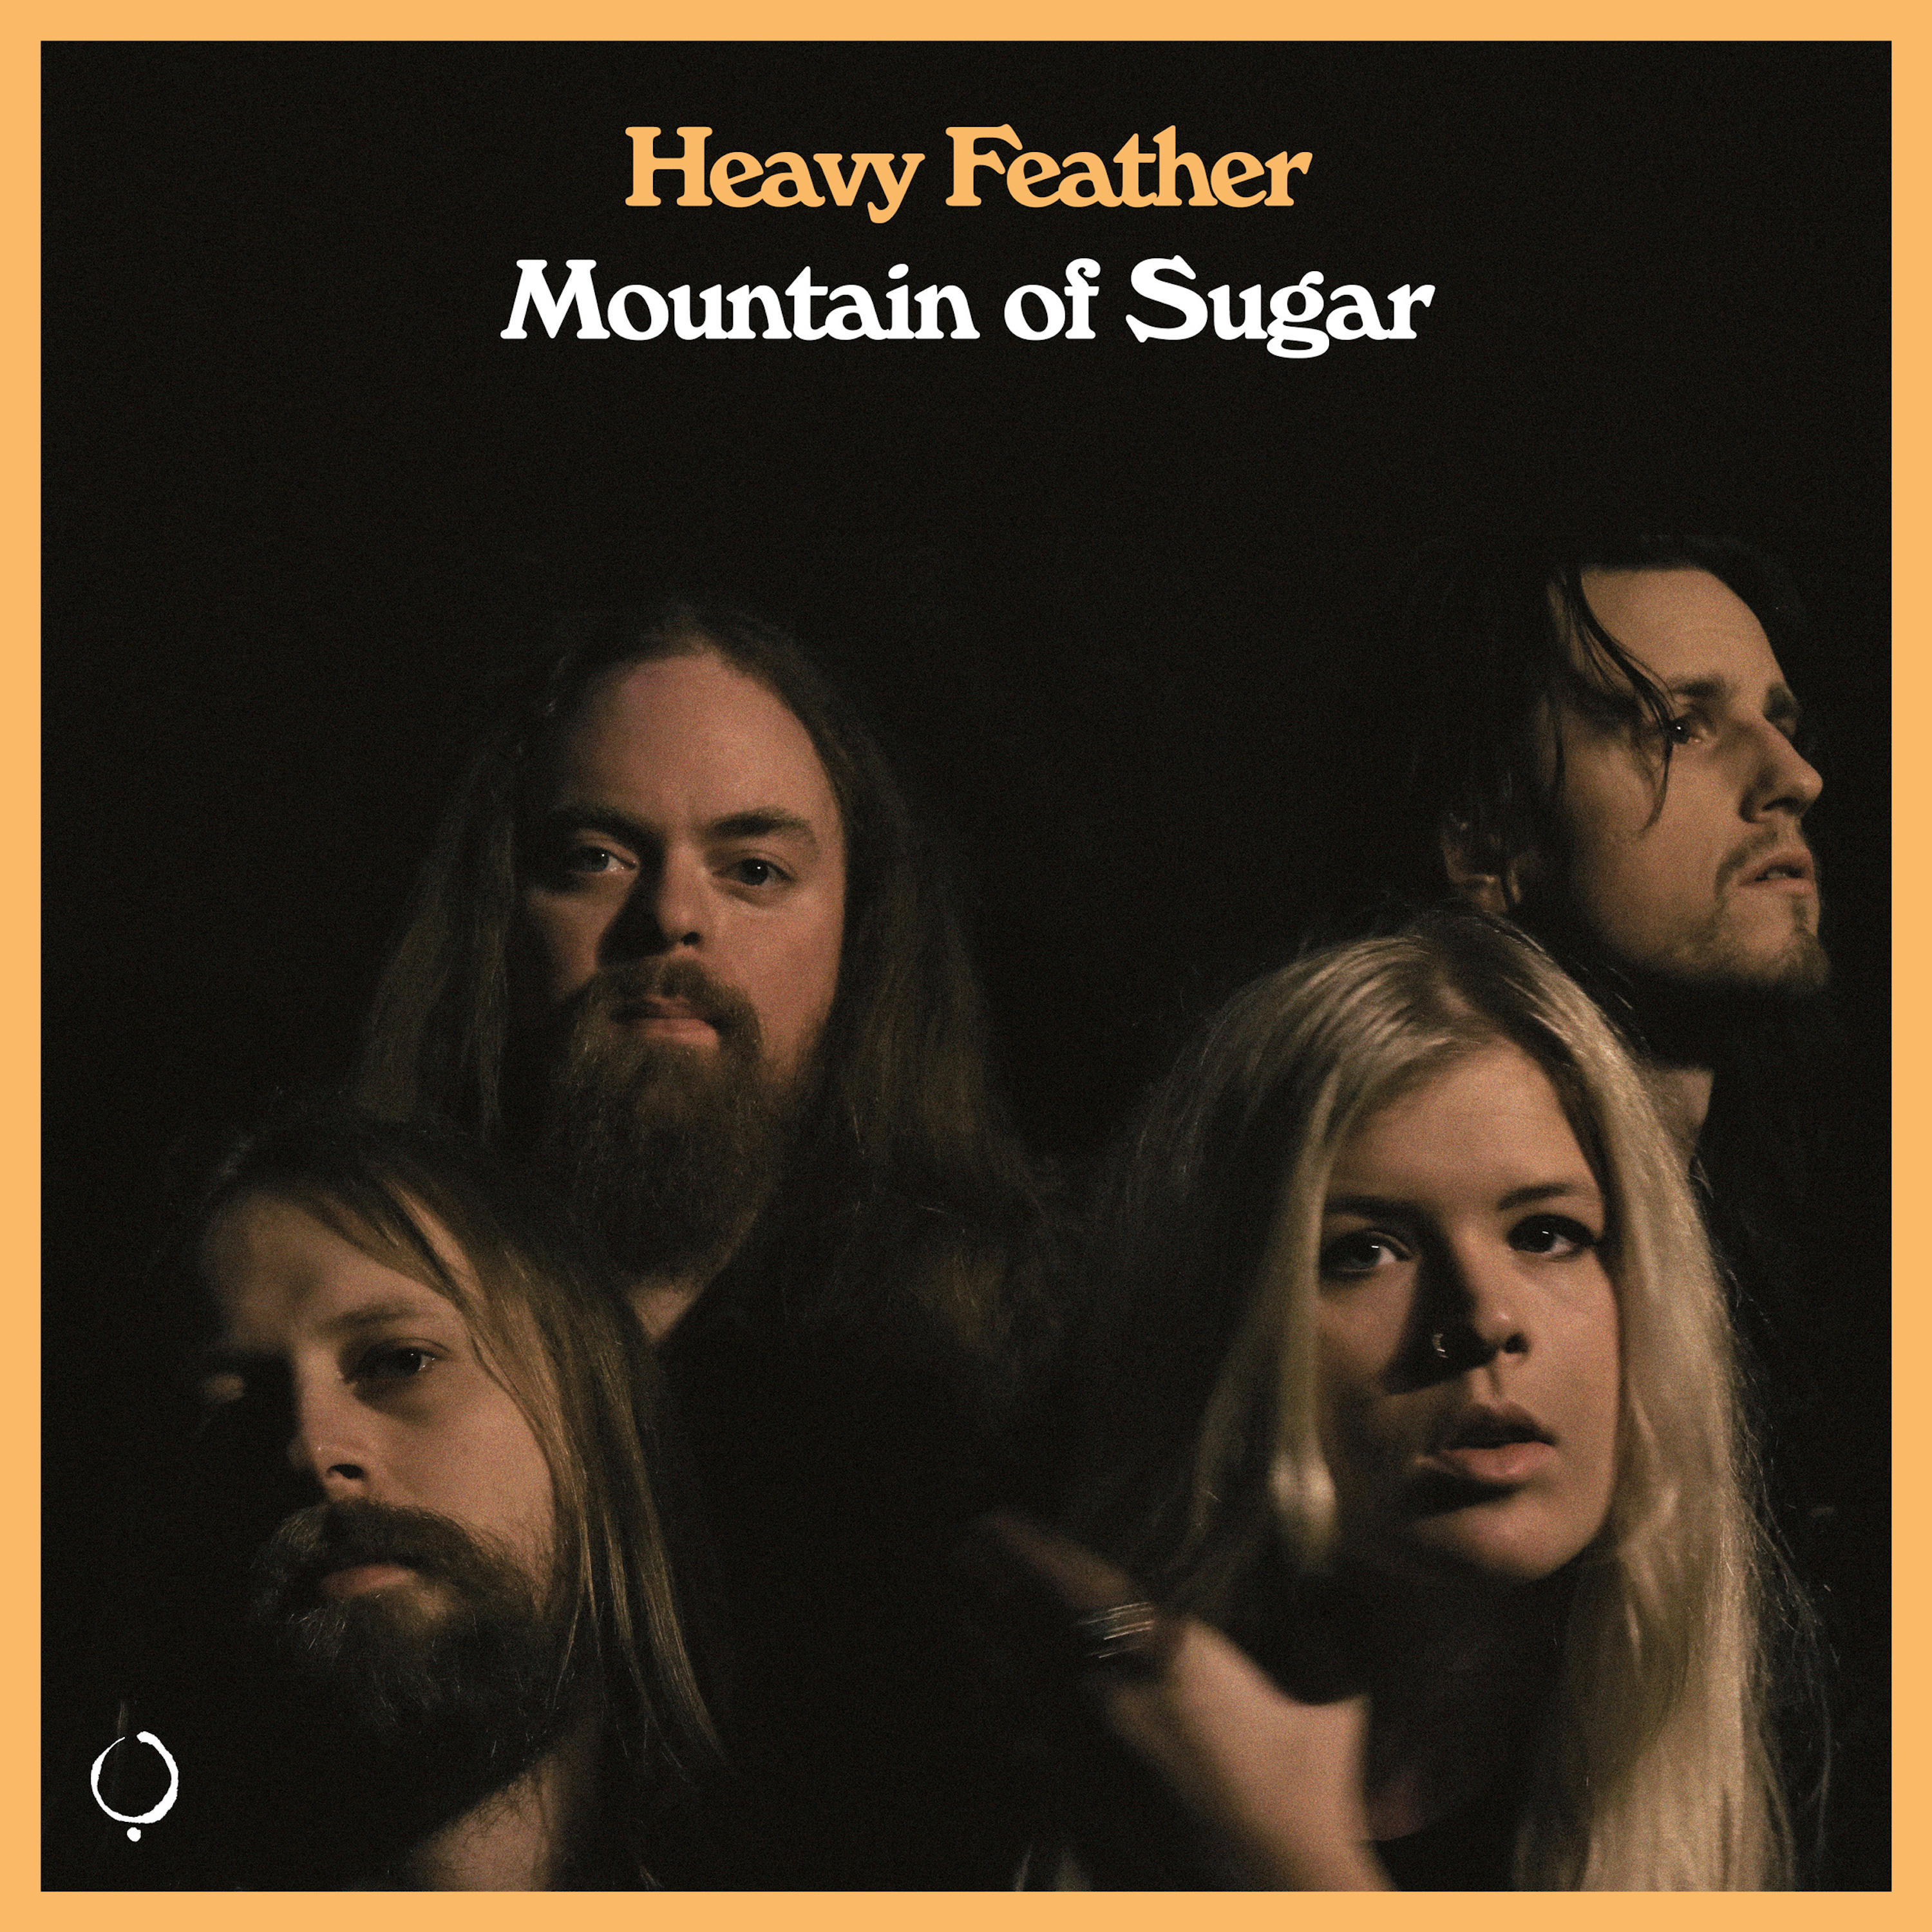 Heavy Feather